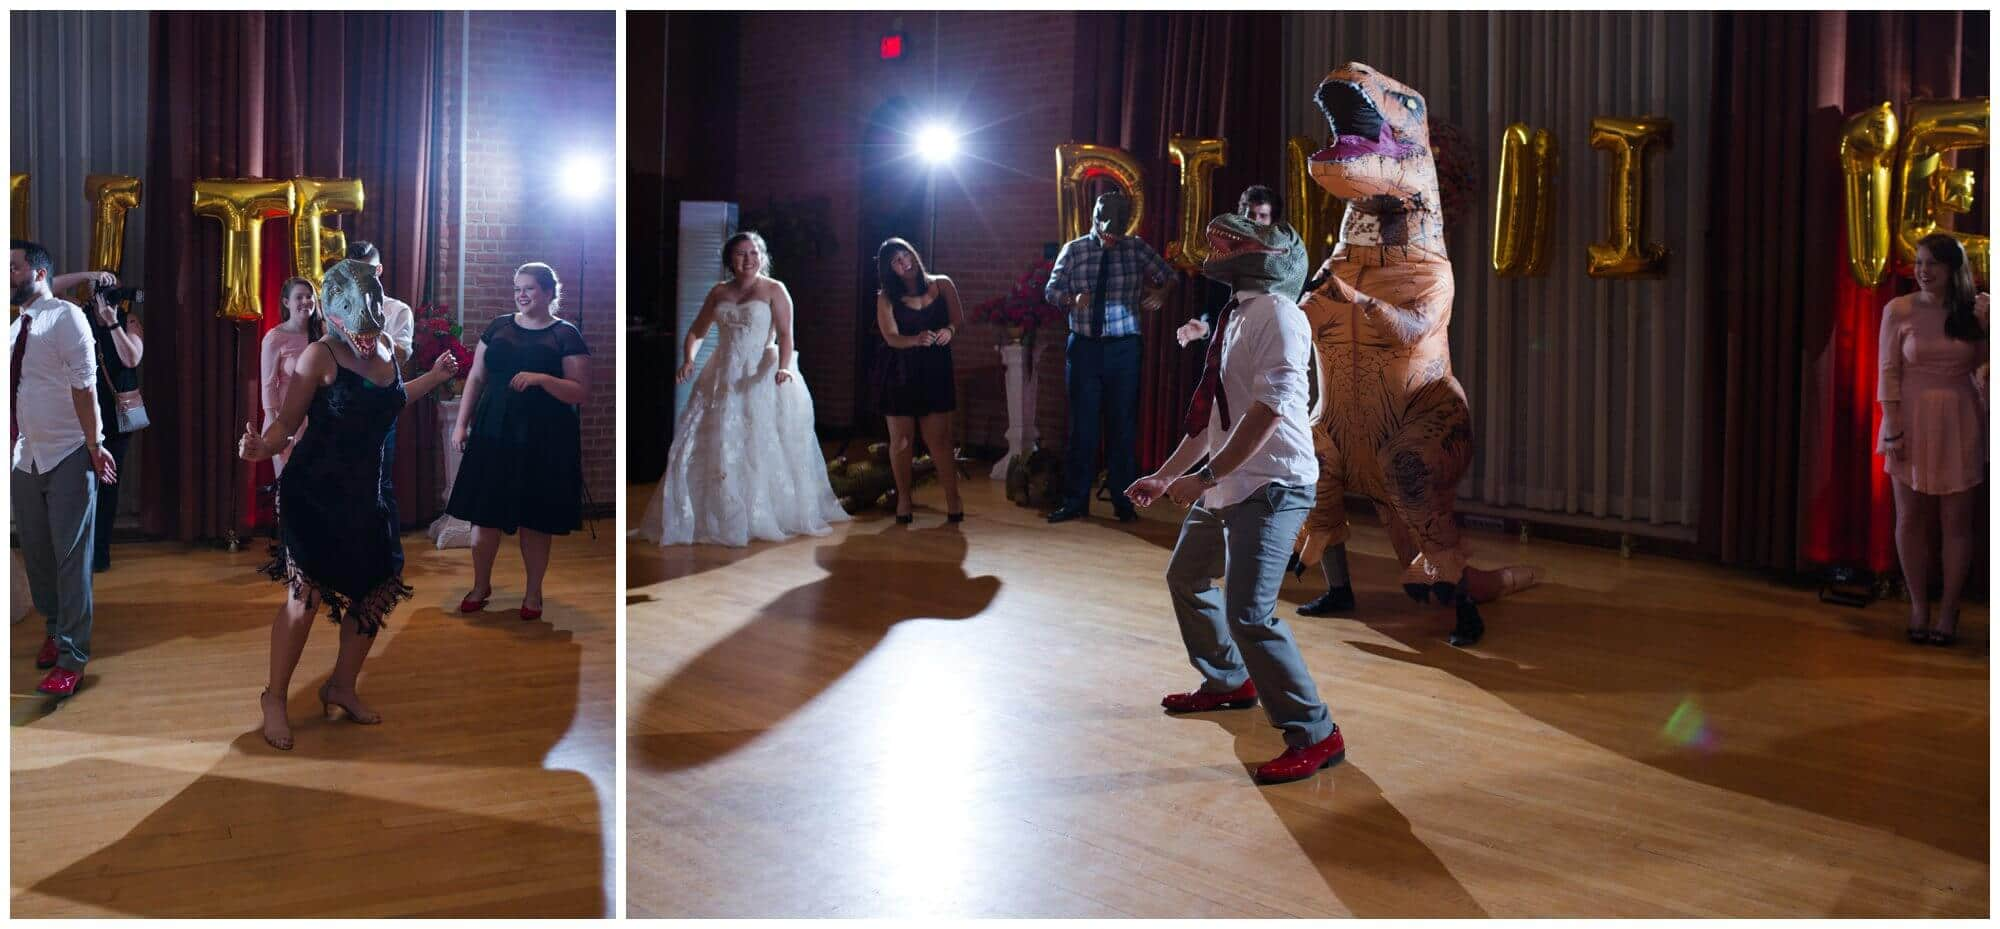 dinosaur themed wedding reception at Rice University in Houston Texas by Swish and Click Photography